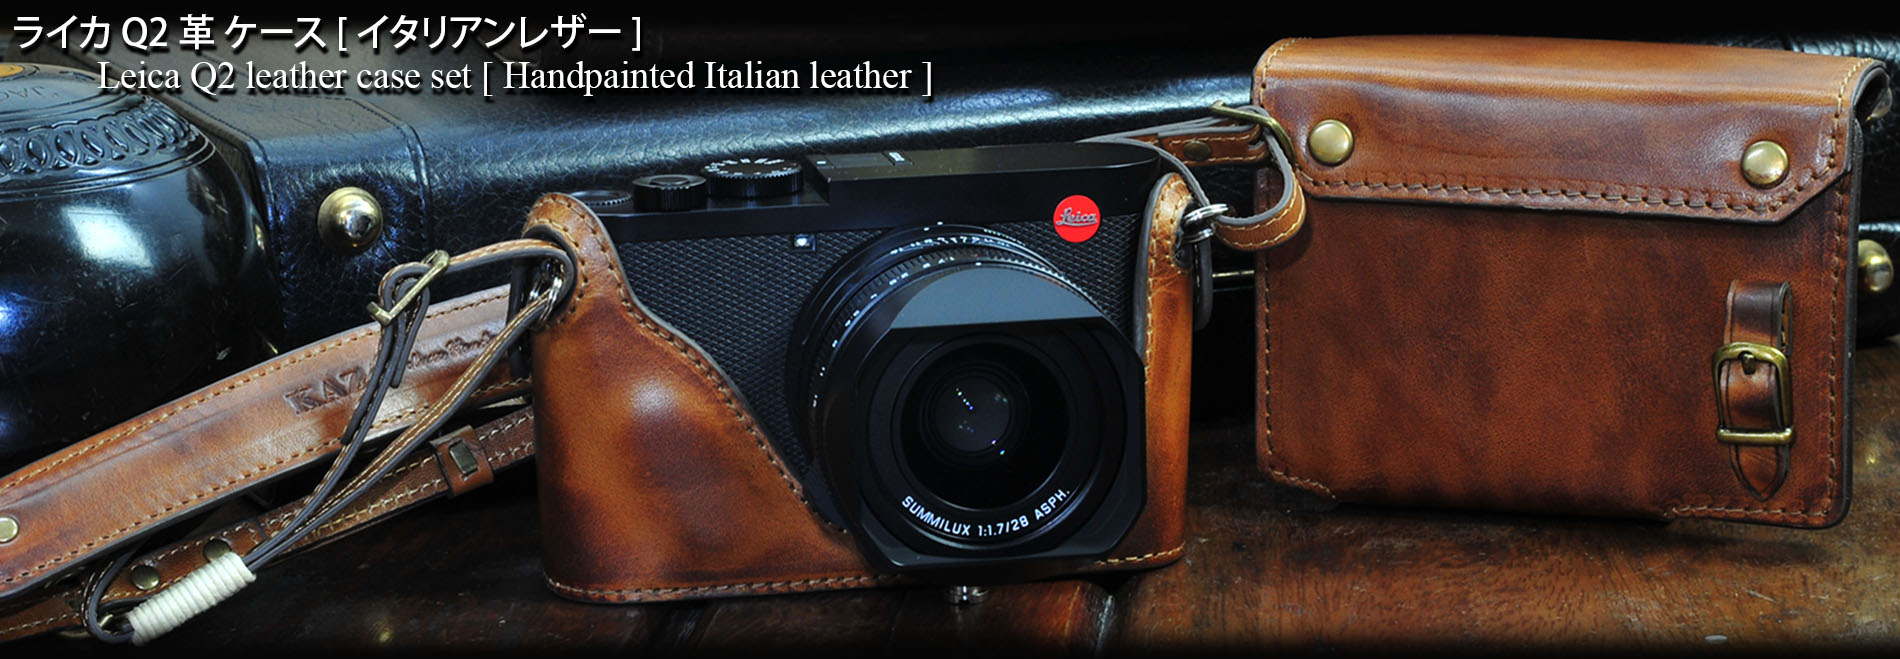 Leica Q2 leather camera case